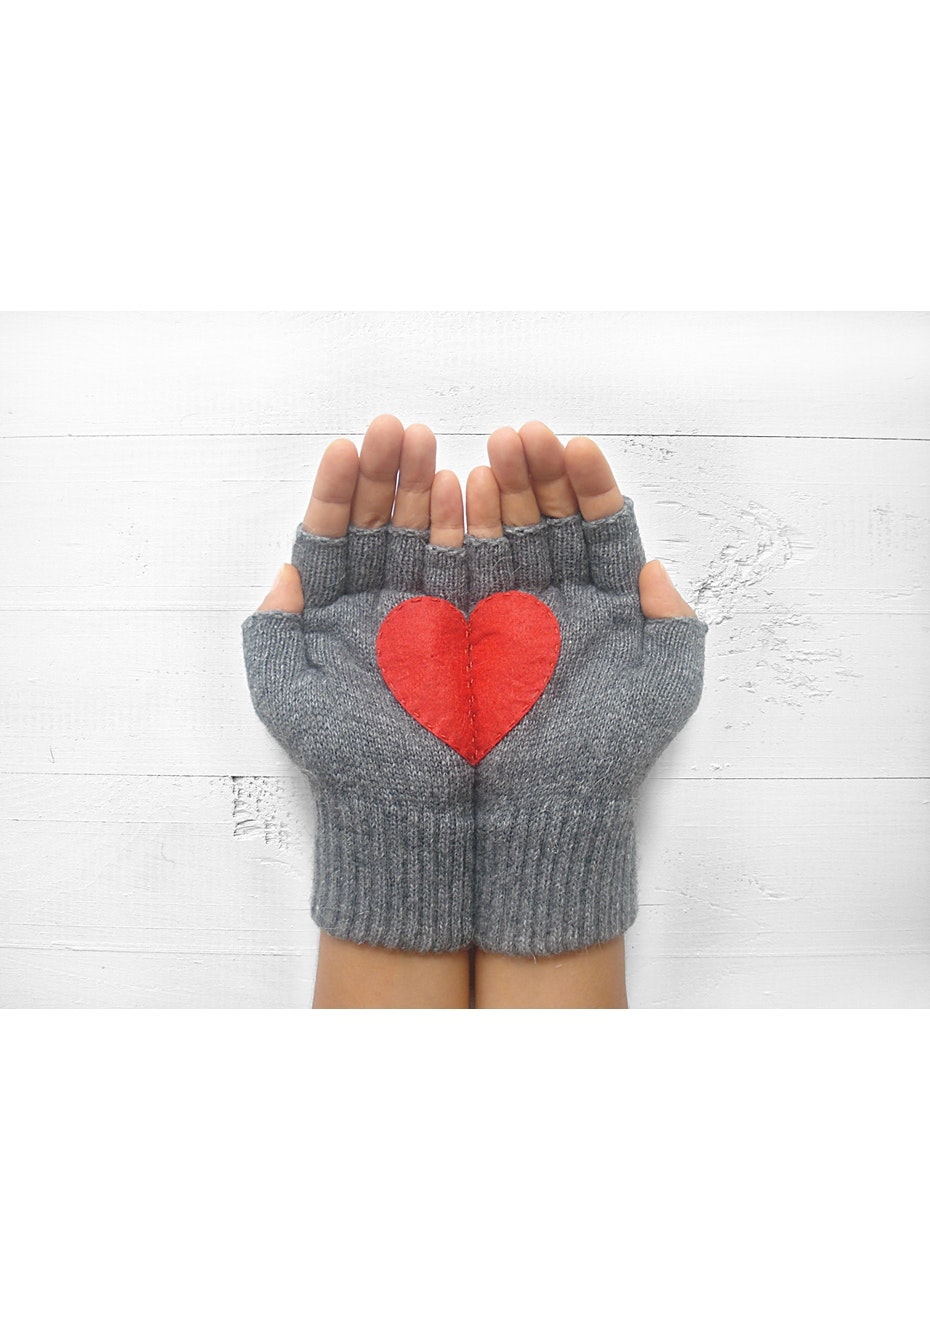 Heart Fingerless Gloves - Concrete/Red